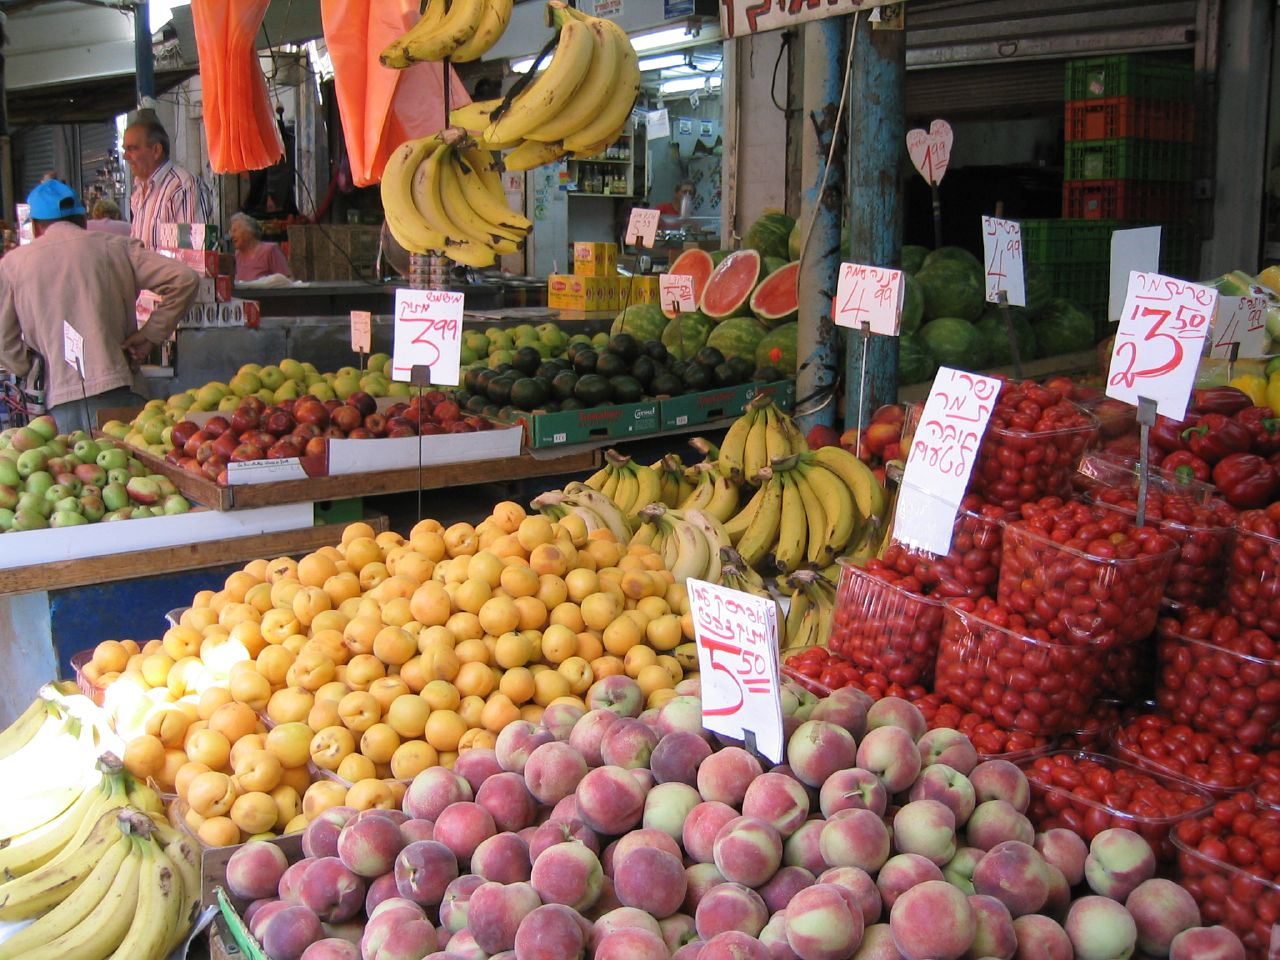 File:Israel produce market.jpg - Wikimedia Commons